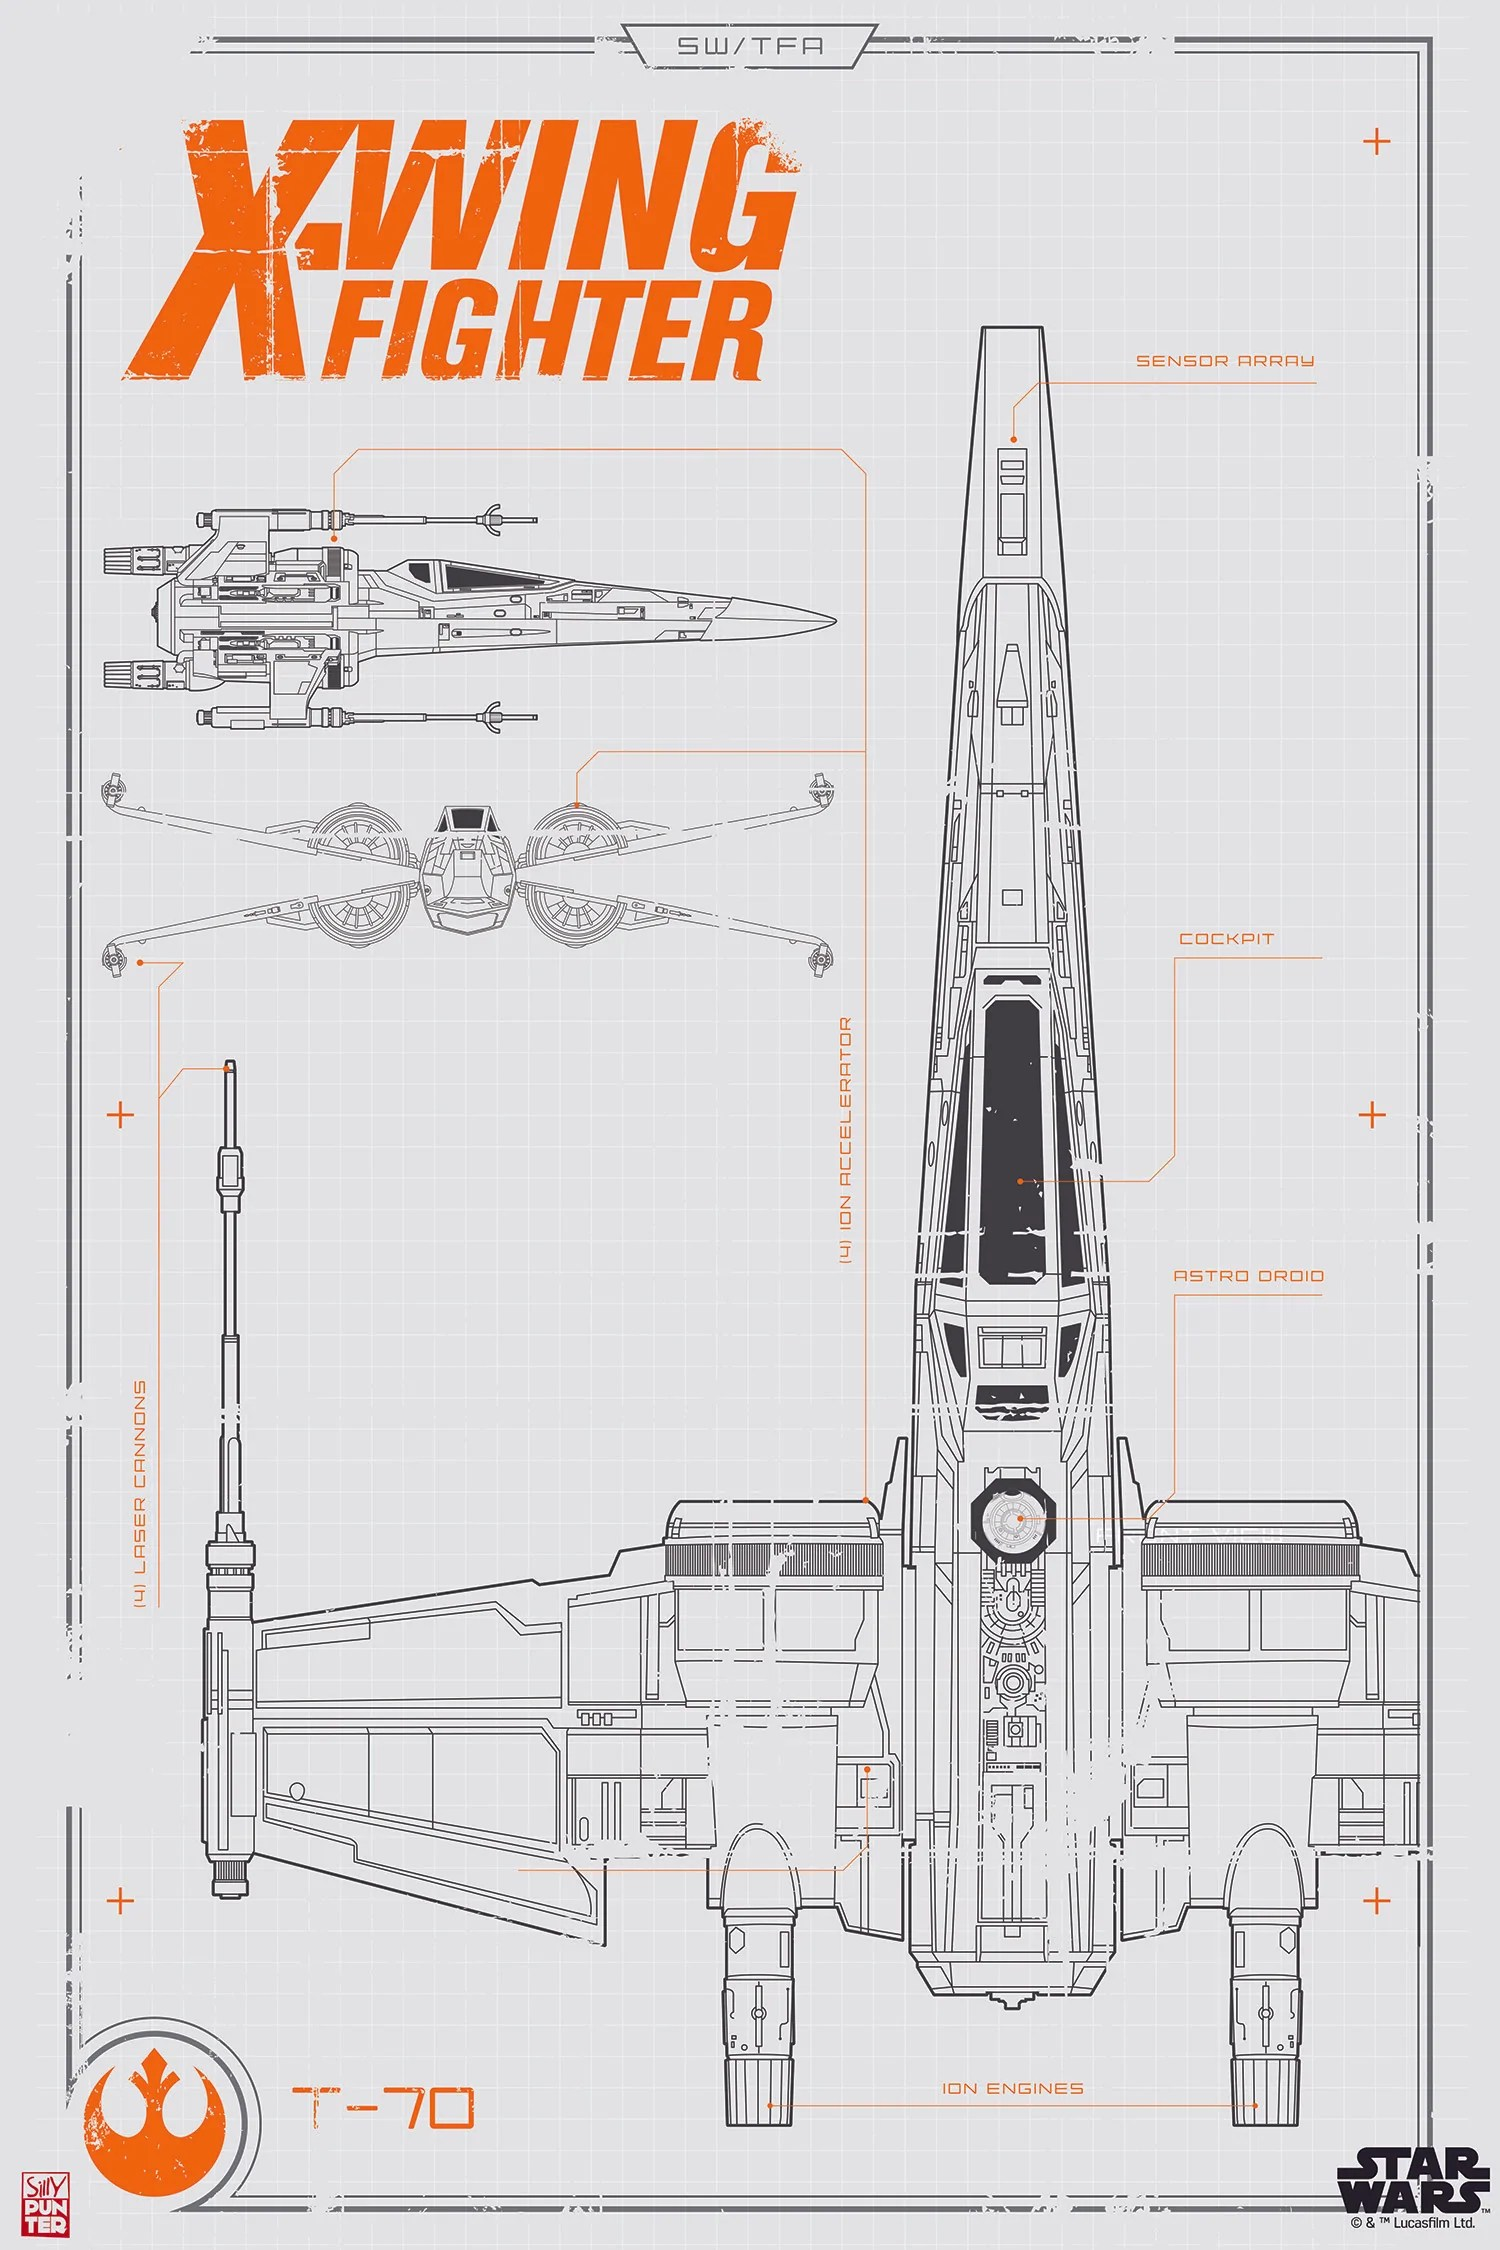 small resolution of star wars x wing fighter blueprint poster